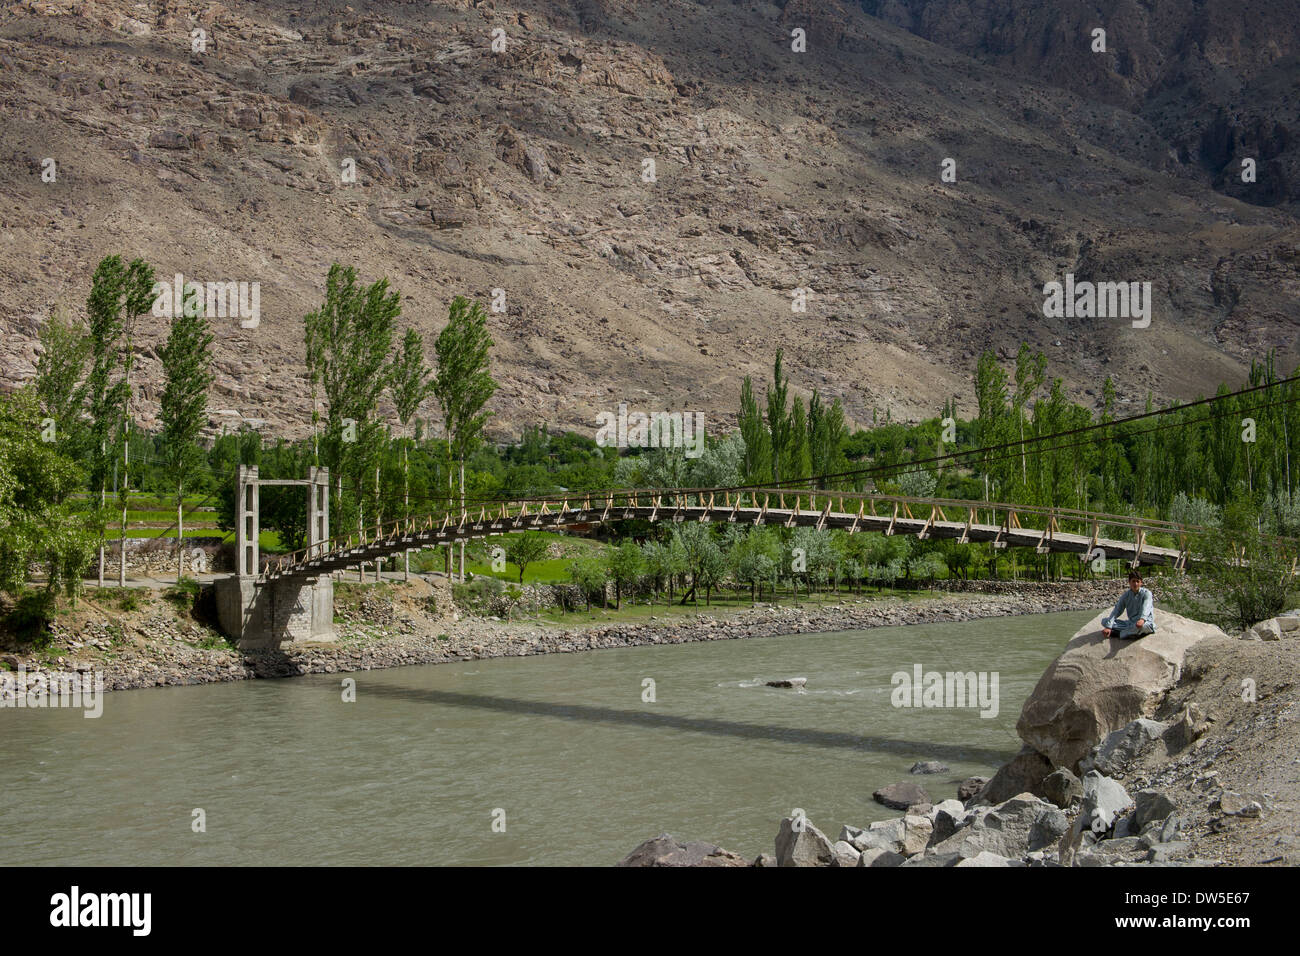 Man sitting next to a suspension bridge over the Ghizar River (Gilgit River) near Sumal Gah, seen from the Shandur-Gilgit Road, Gilgit-Baltistan, Pakistan - Stock Image